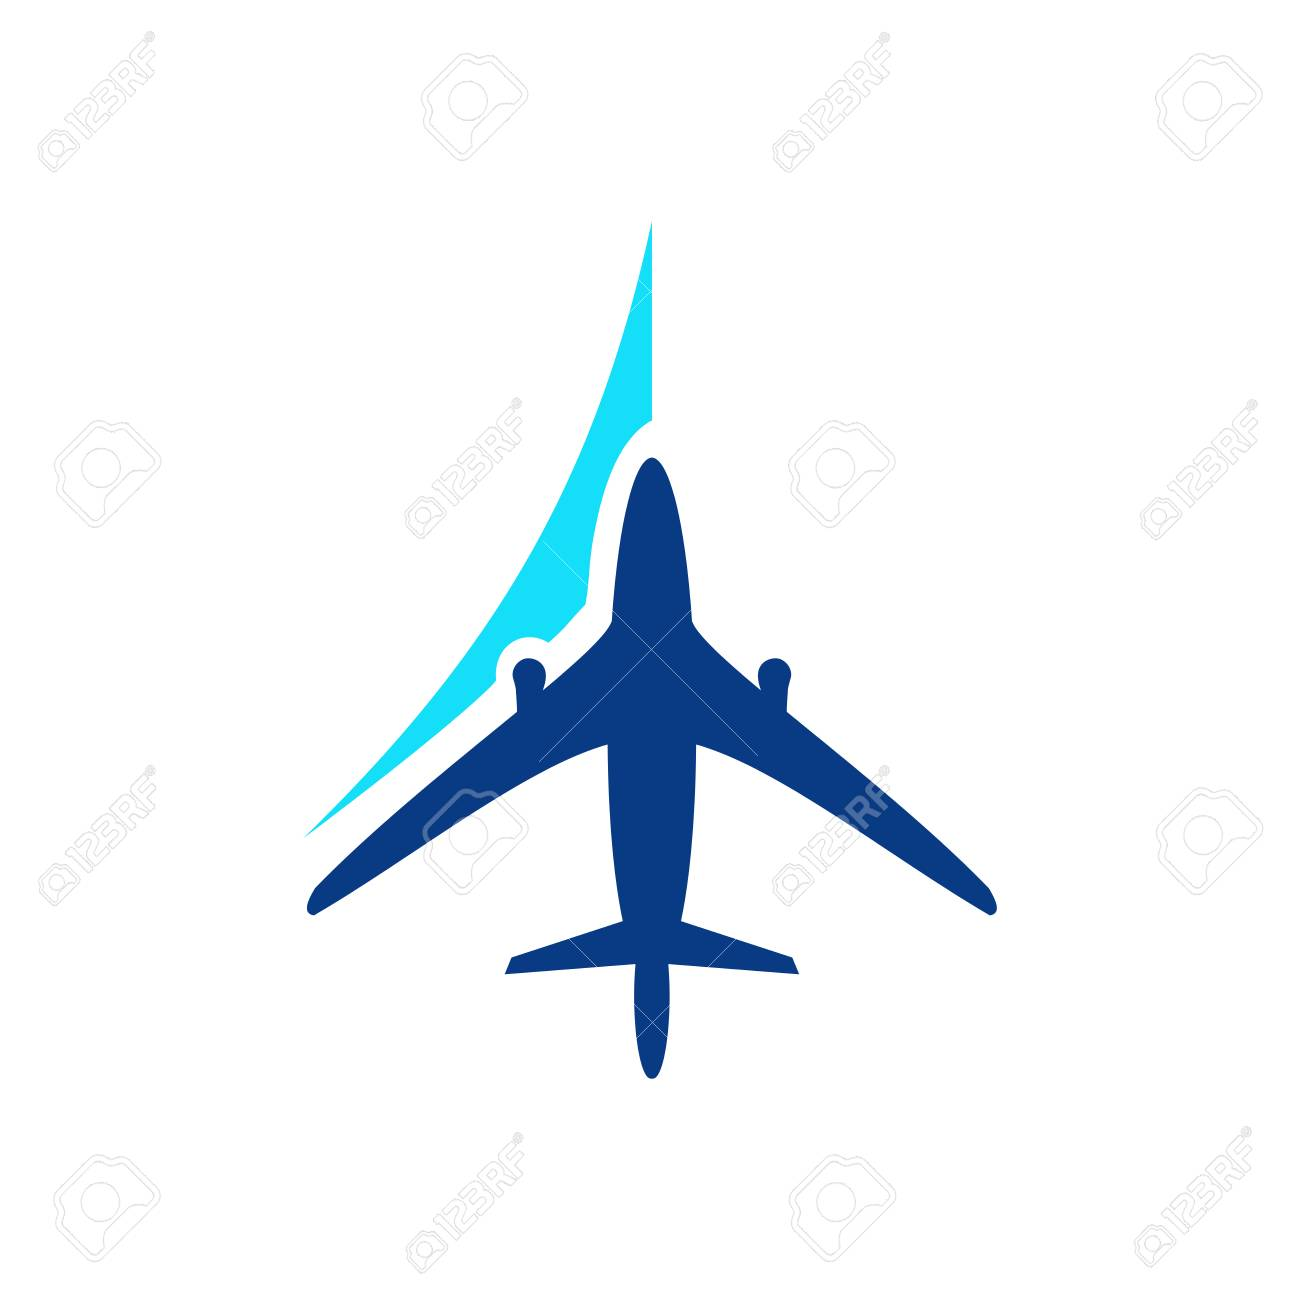 Airplane Symbol Vector Airplane Logo Template Aircraft Silhouette Royalty Free Cliparts Vectors And Stock Illustration Image 102330369